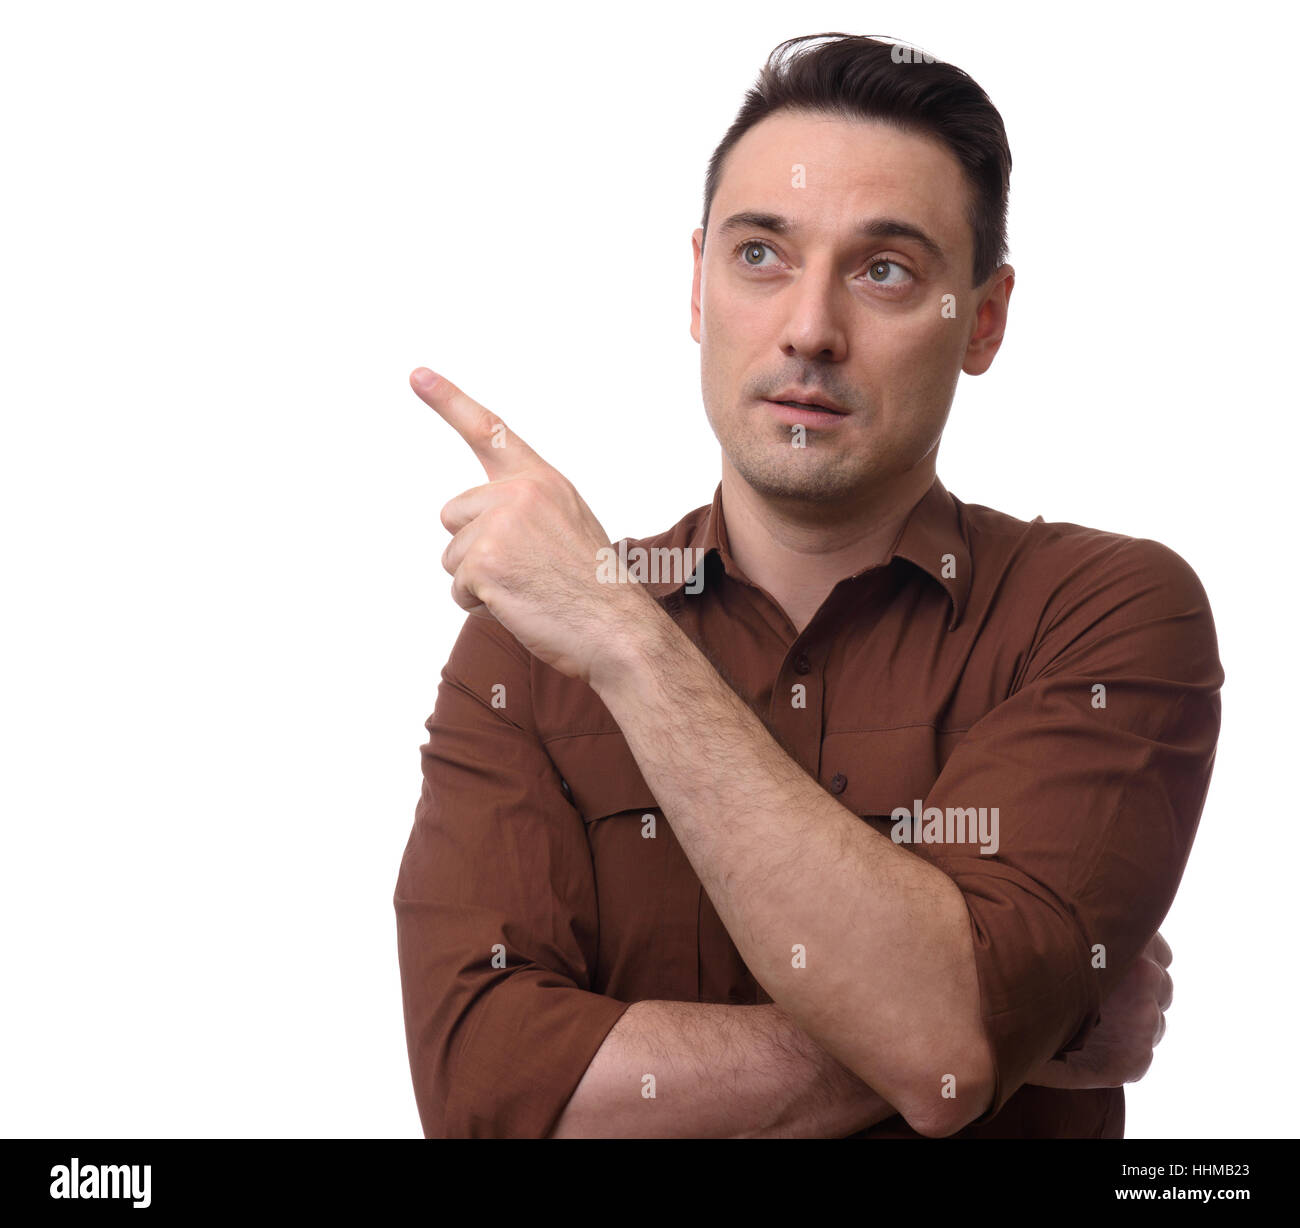 smiling man pointing finger to copy space. Isolated on white background - Stock Image